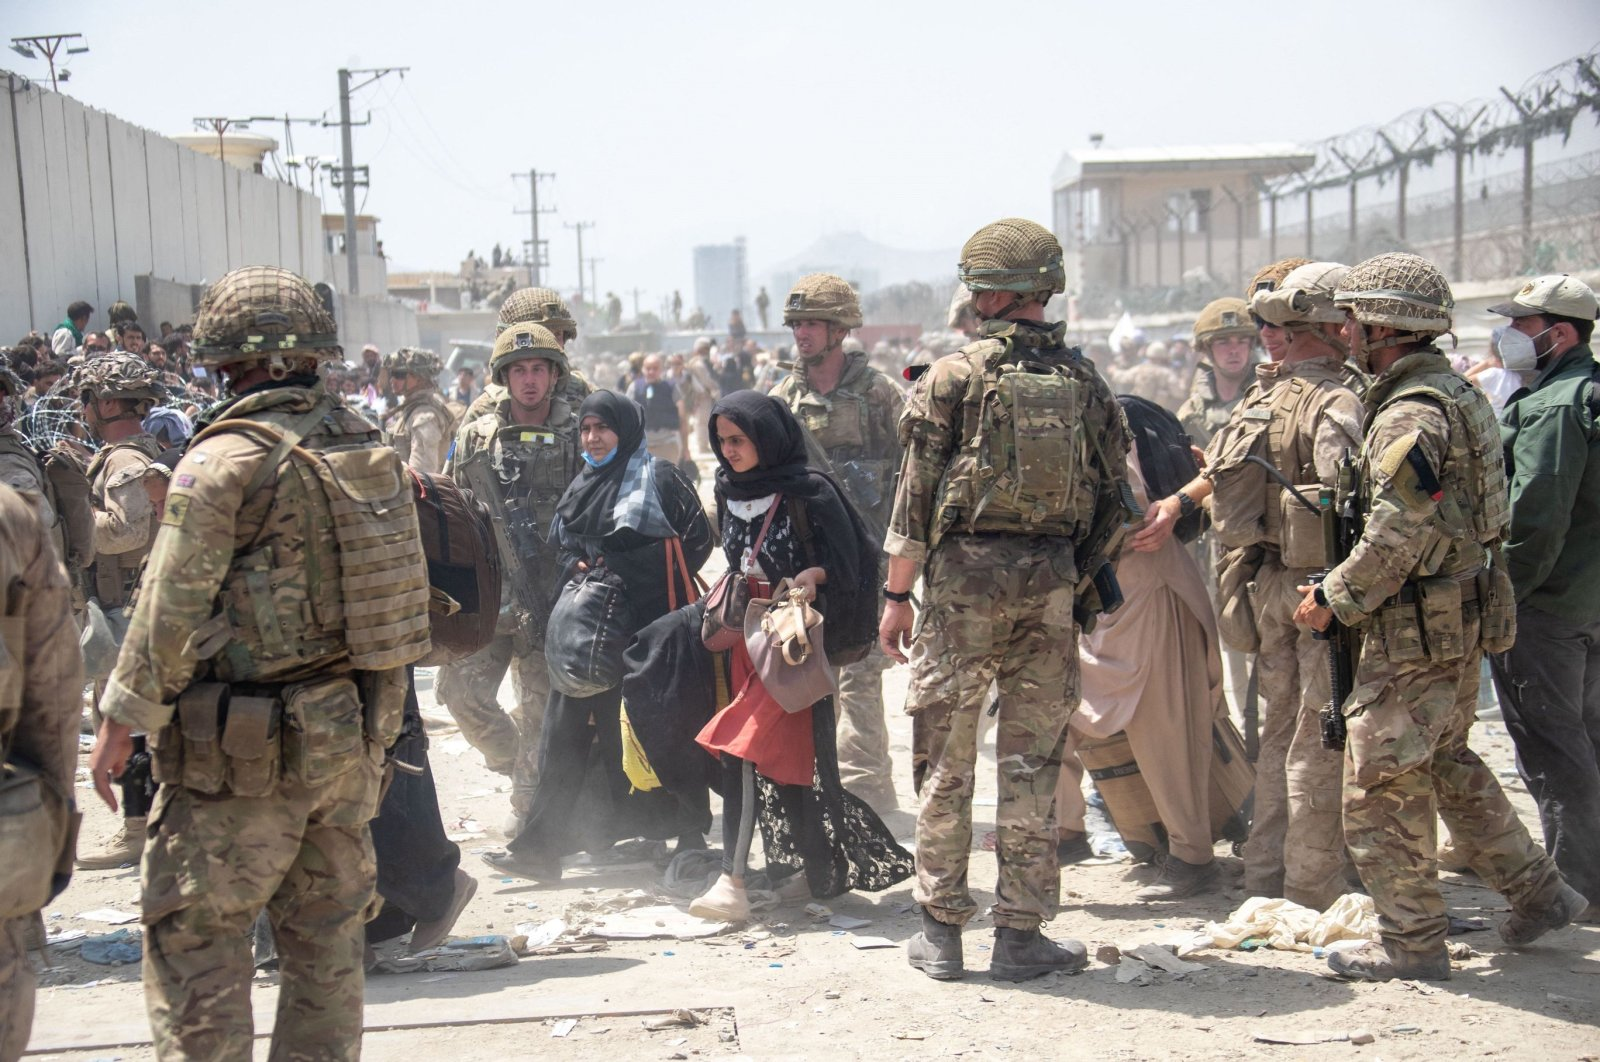 A handout picture released by the British Ministry of Defence (MOD) shows members of the British and U.S. Armed Forces working at Kabul Airport, Afghanistan, Aug. 21, 2021. (Photo by U.K. Ministry of Defence via AFP)